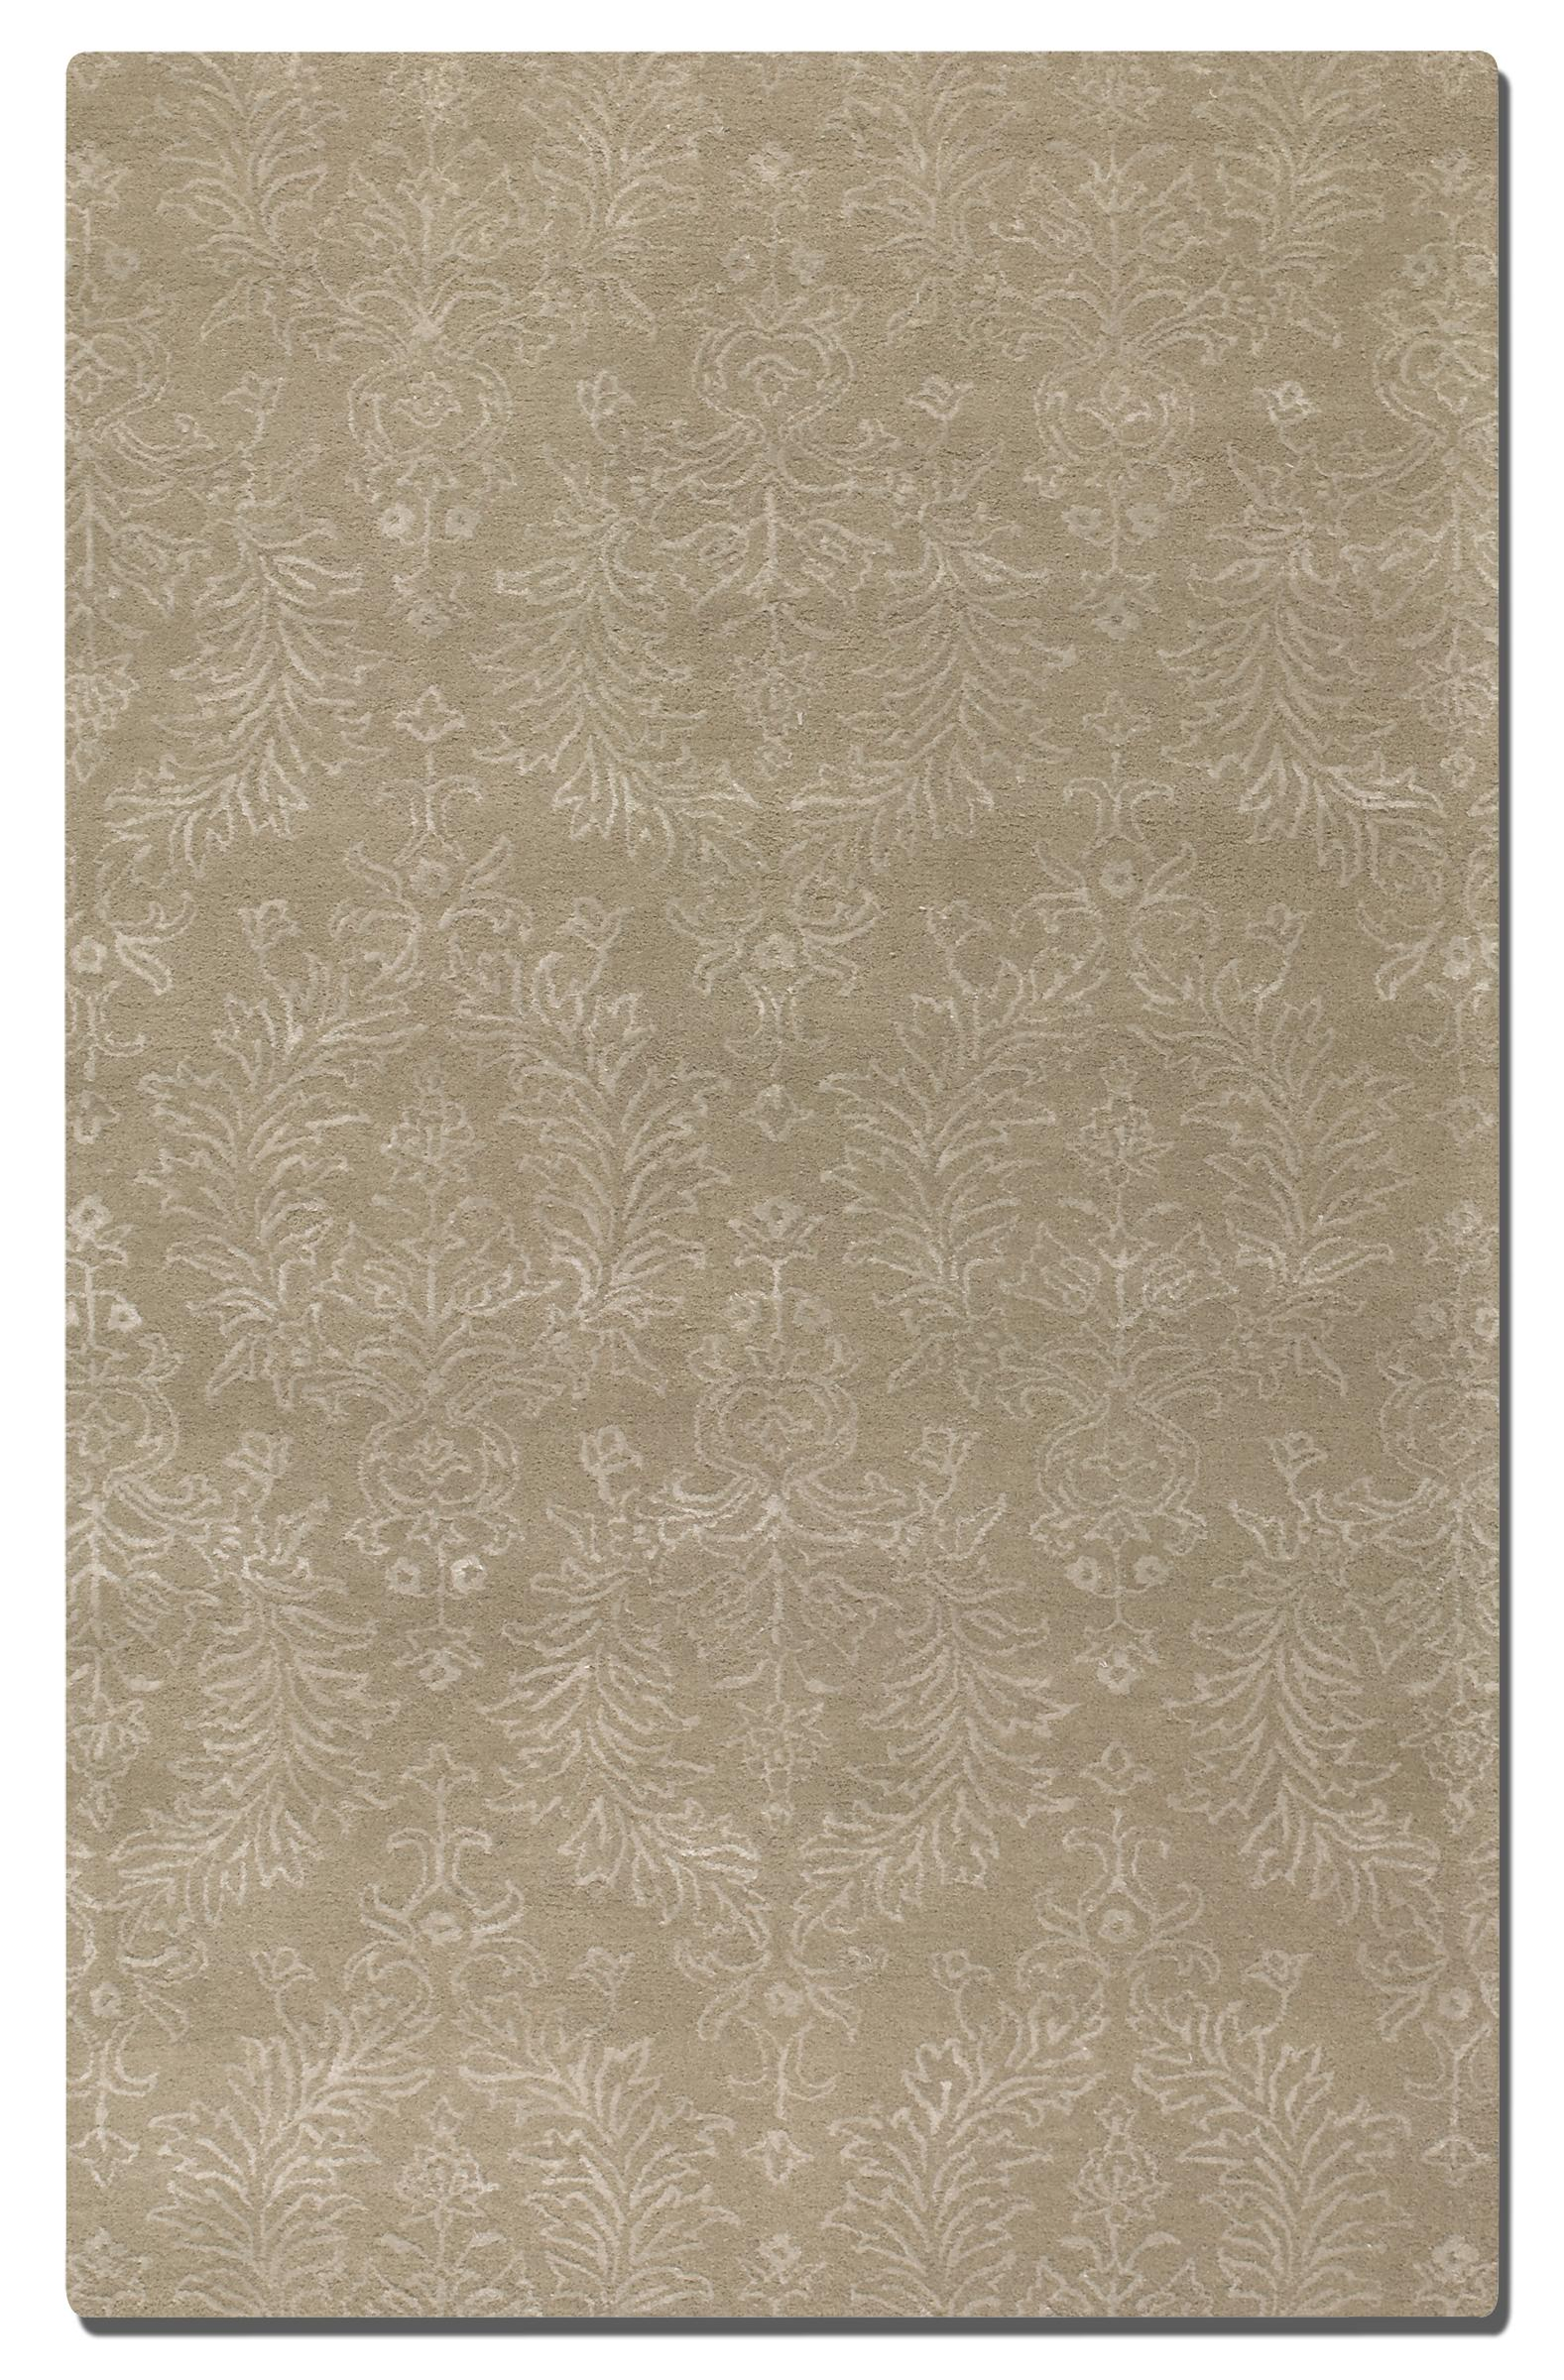 Uttermost Rugs Paris 9 X 12  - Item Number: 73034-9